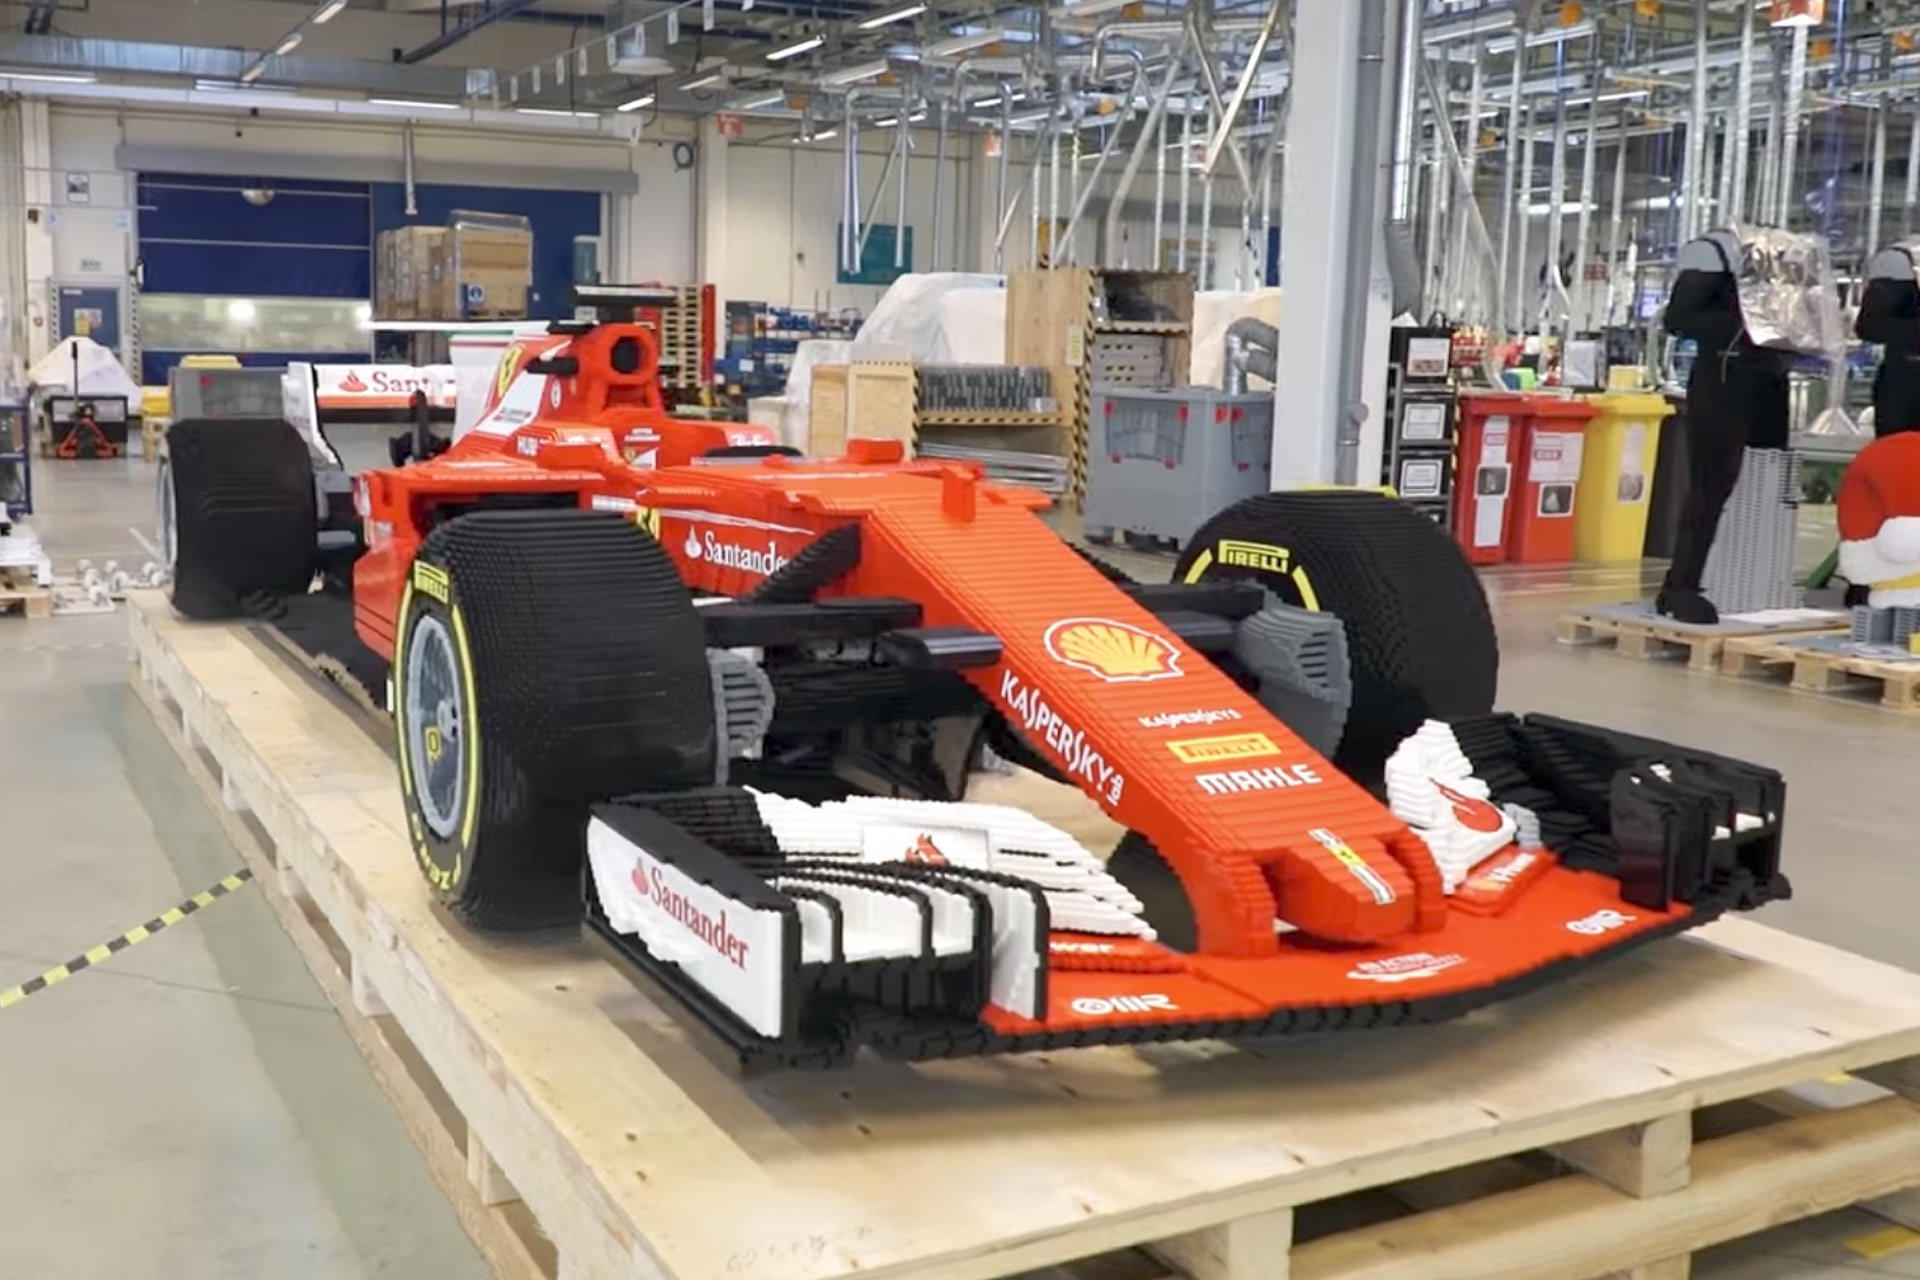 Making-of: How a Ferrari F1 Is Built From 350.000 LEGO Bricks